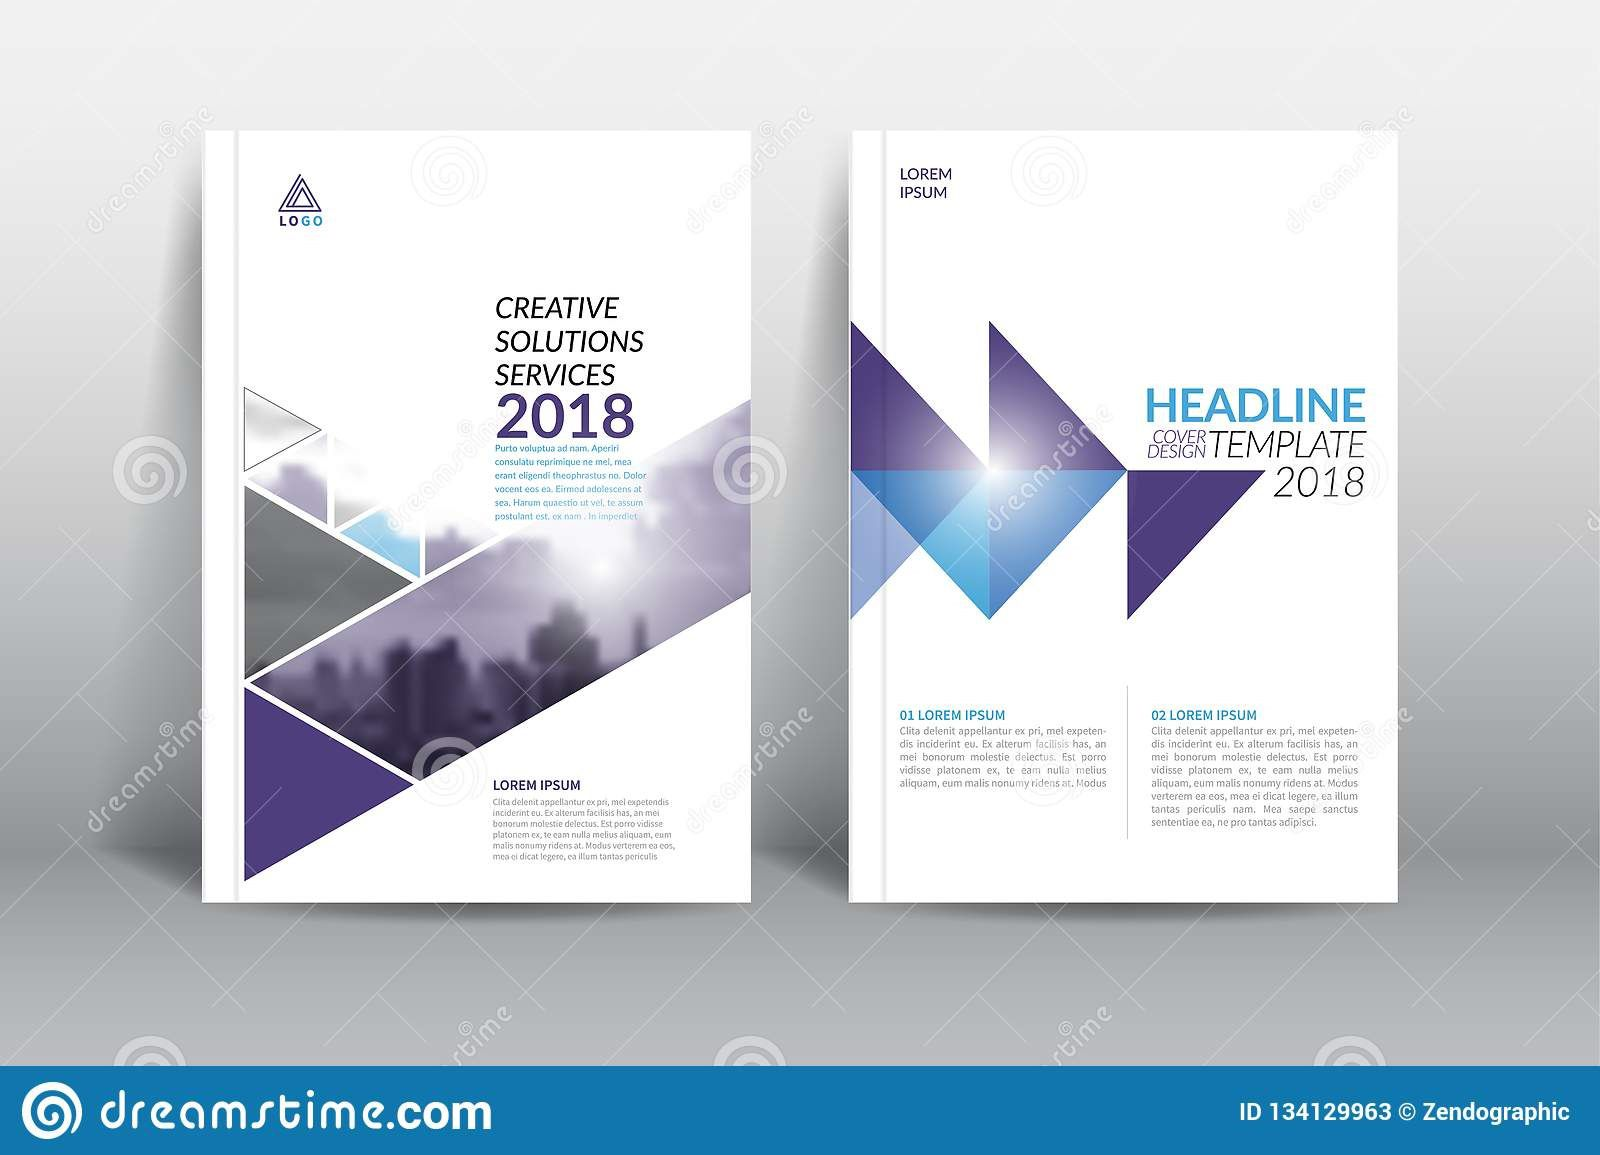 007 Frightening Free Download Annual Report Cover Design Template Example  Indesign In WordFull